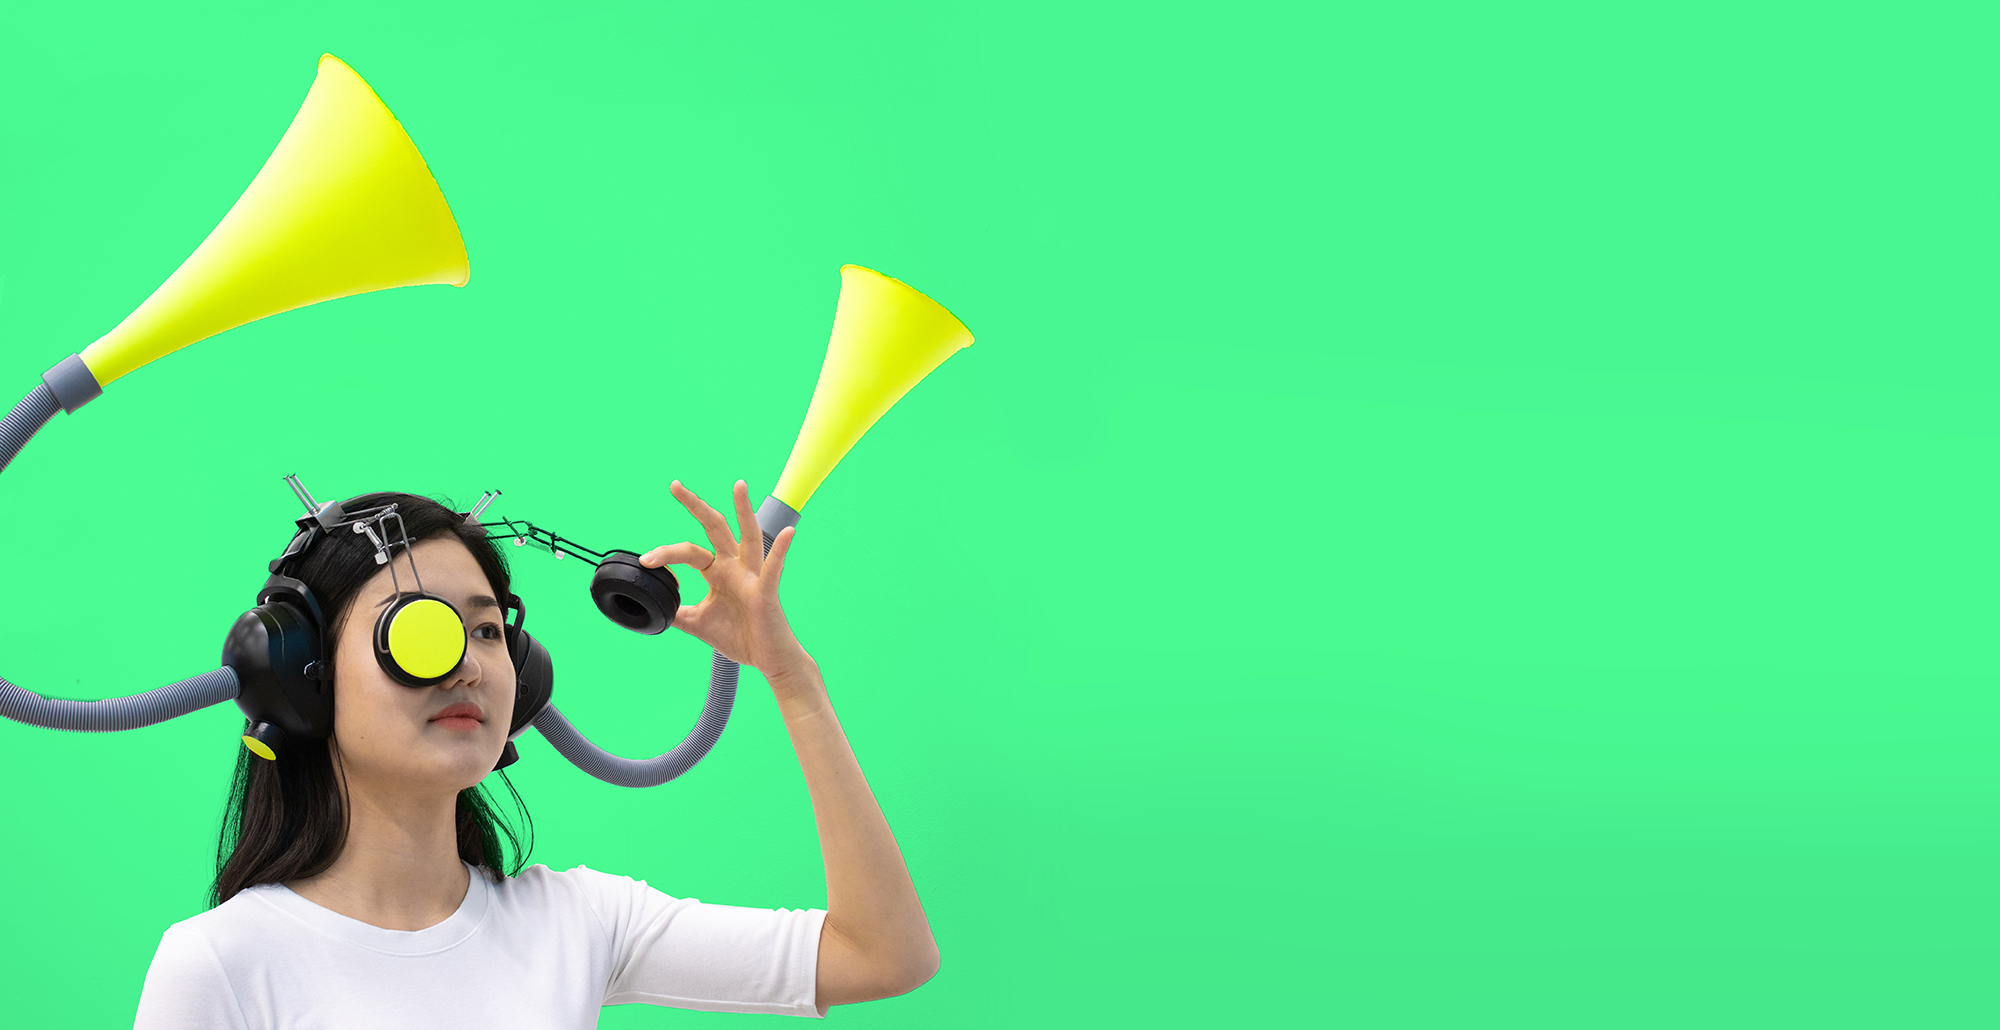 Figure wearing mask with yellow trumpets against bright green background